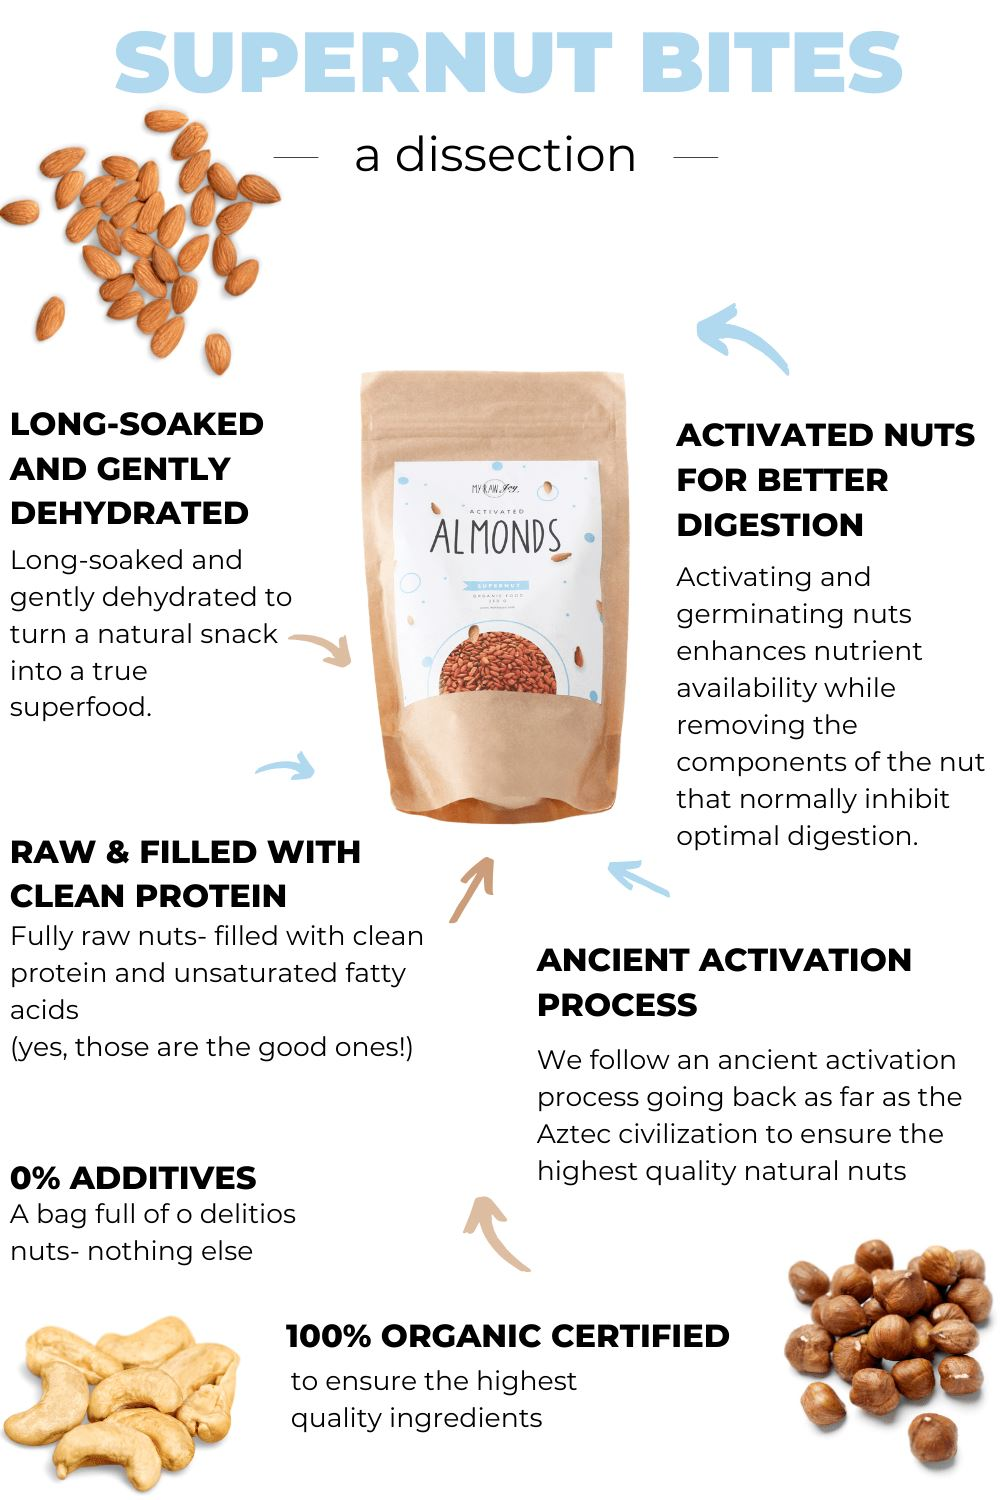 Activated Hazelnut Supernut Bites SuperNut Bites MyRawJoy